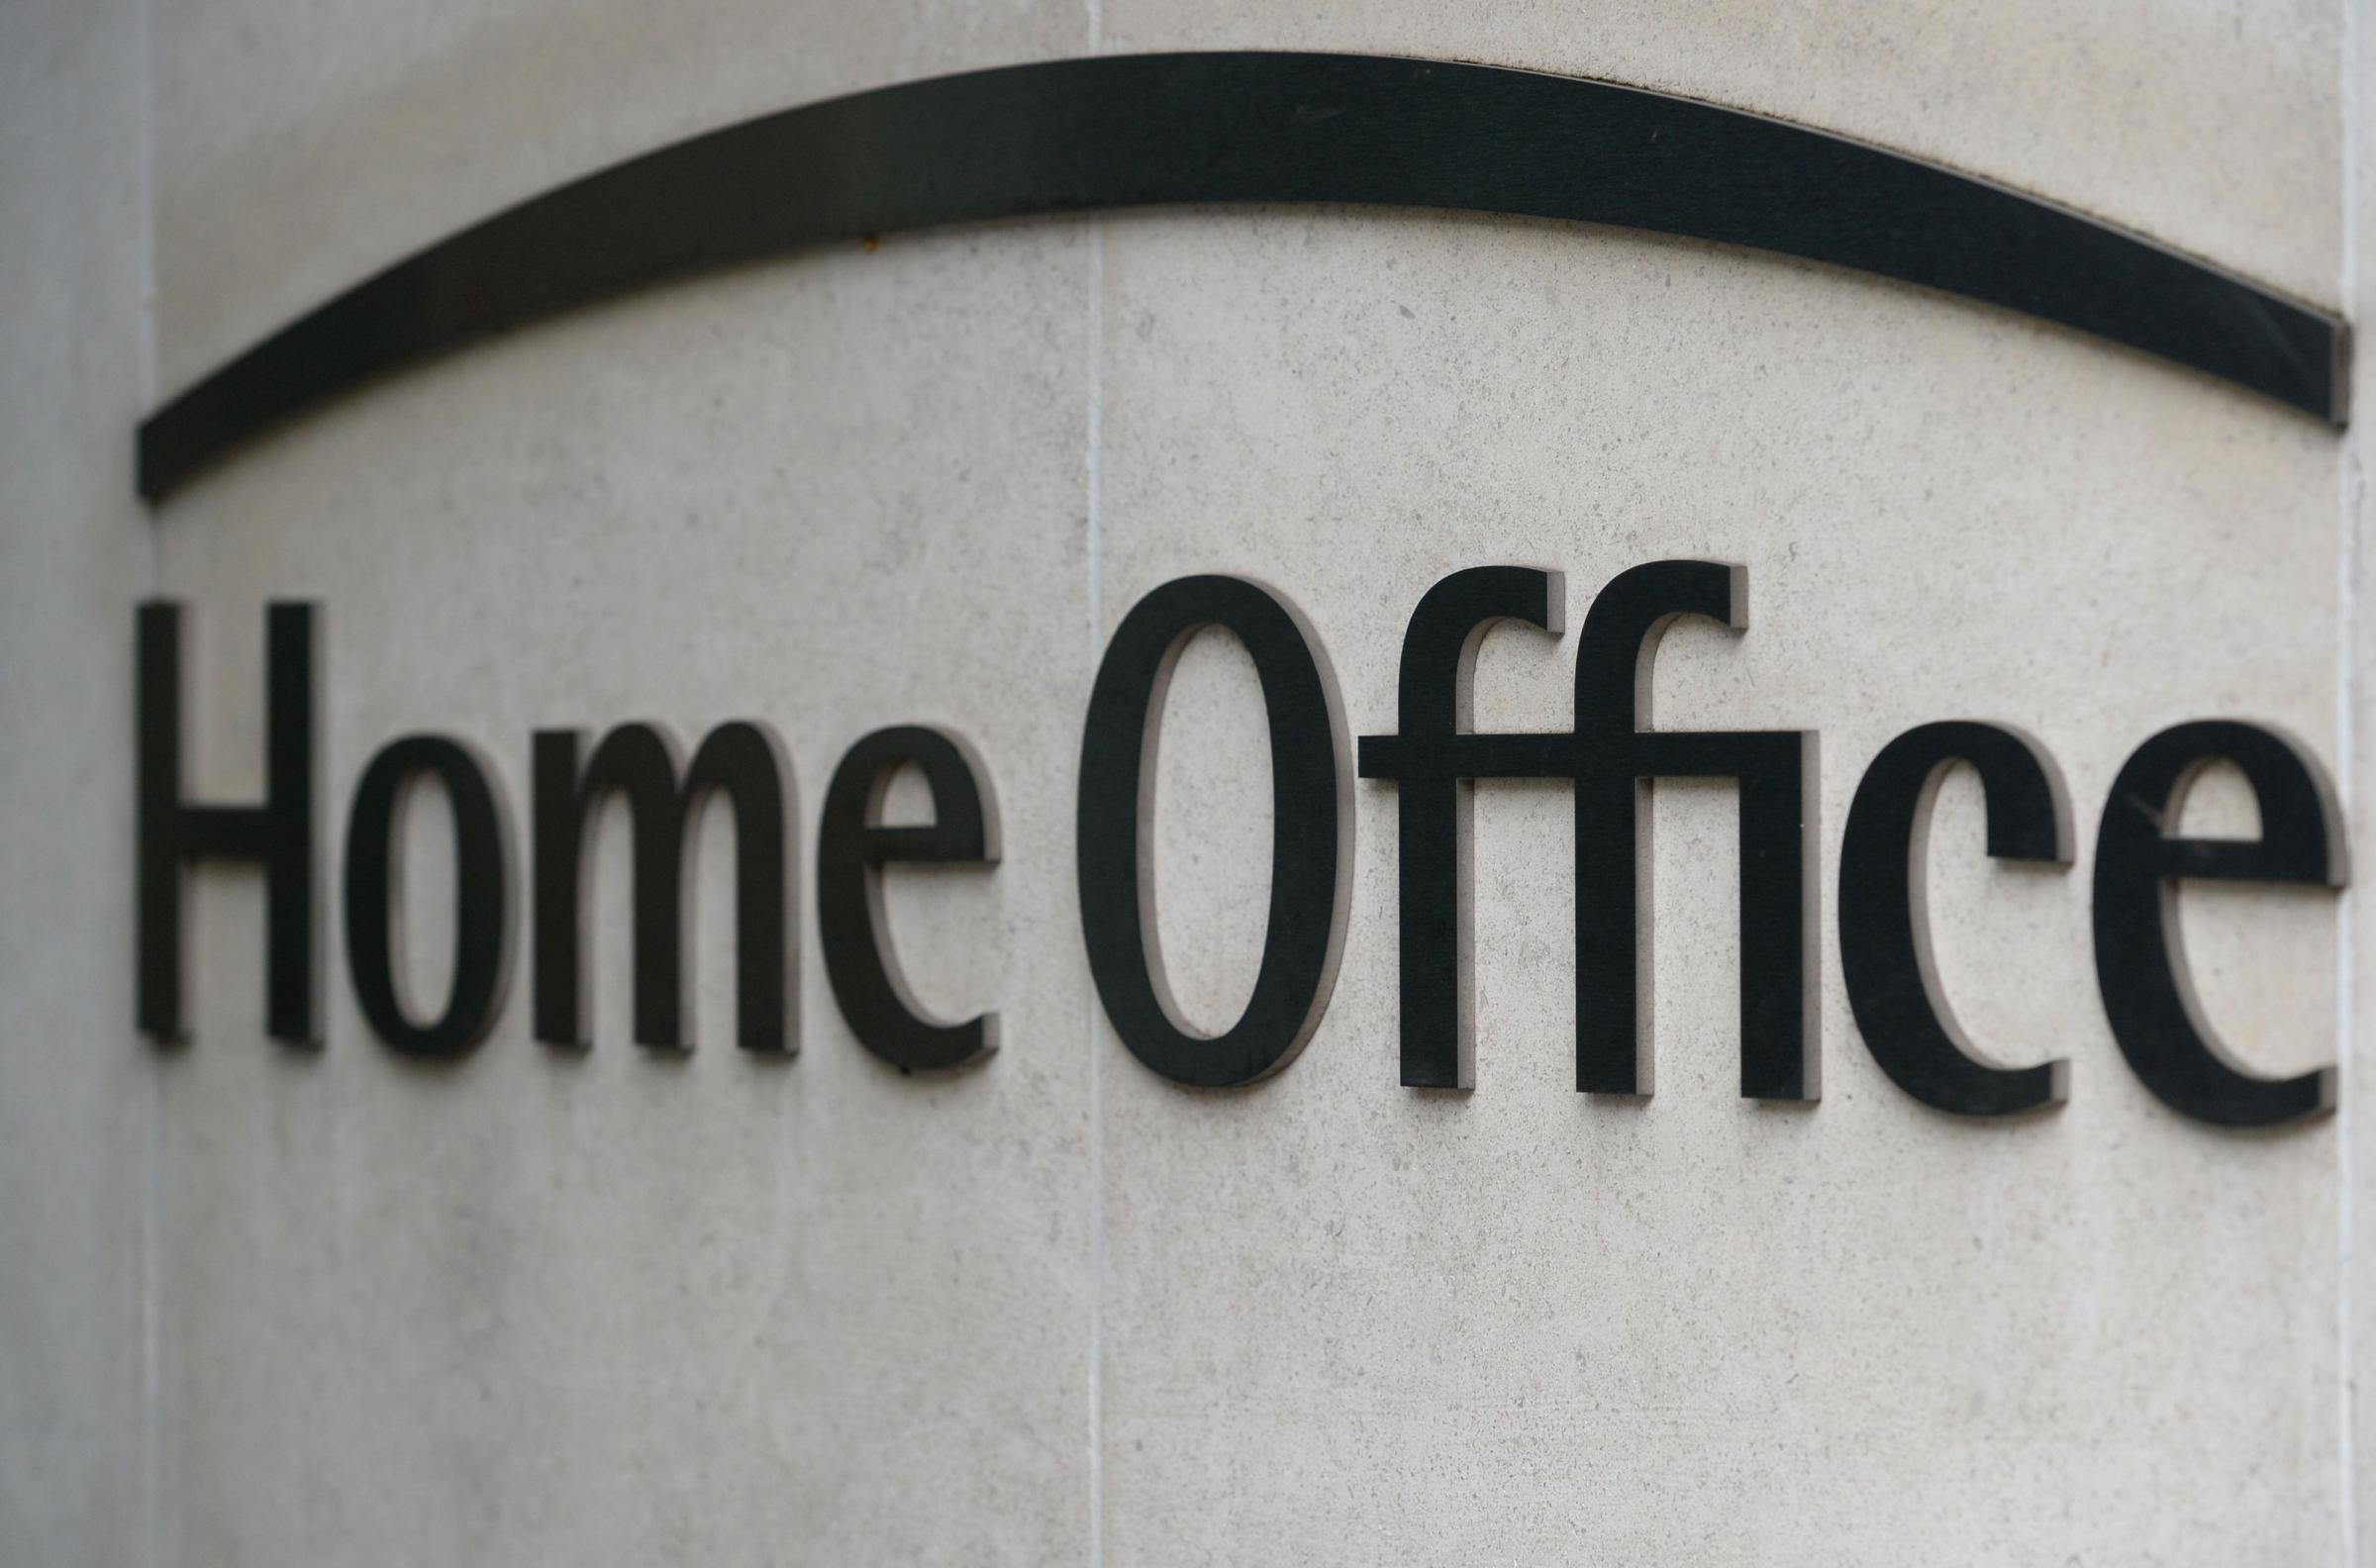 Home Office sign